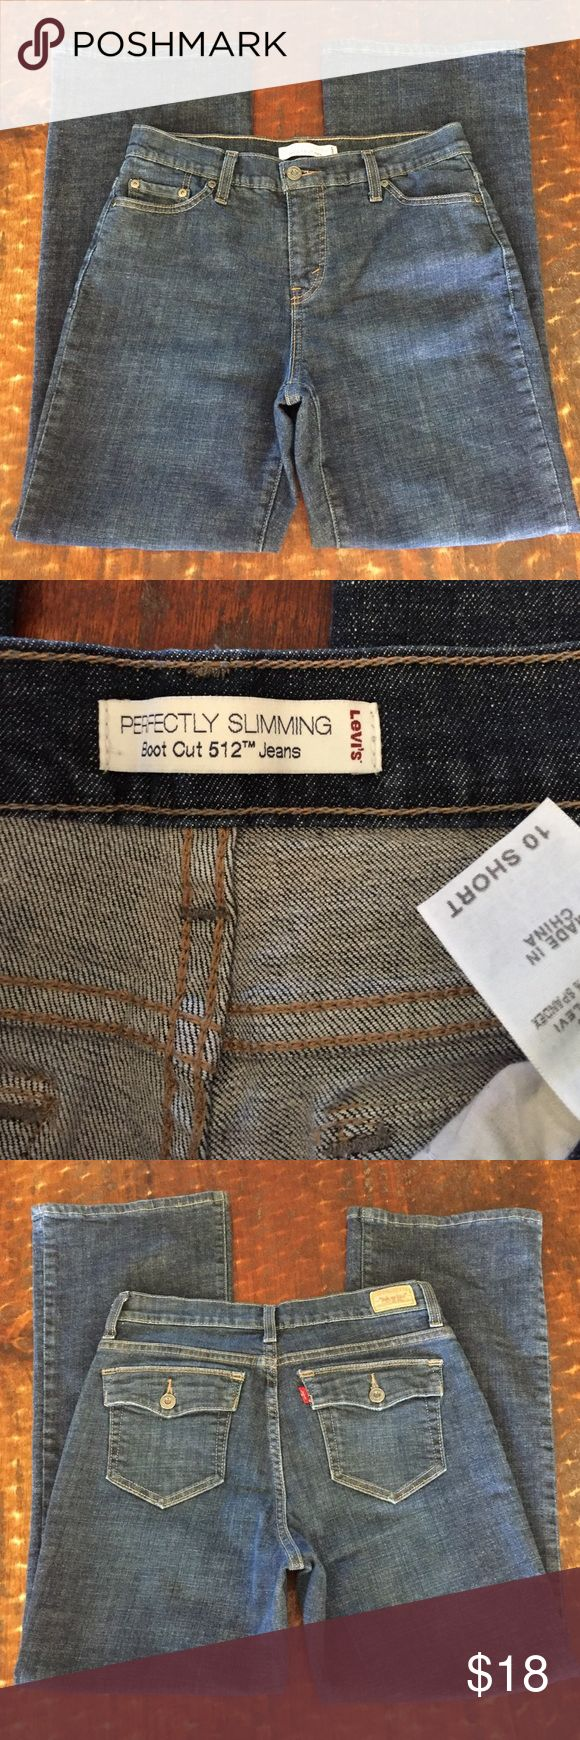 "Levi's 512 boot cut, size 10 short, 28.5"" inseam Levi's 512 boot cut perfectly slimming jeans, size 10 short, 28.5"" inseam, great condition! Levi's Jeans Boot Cut"